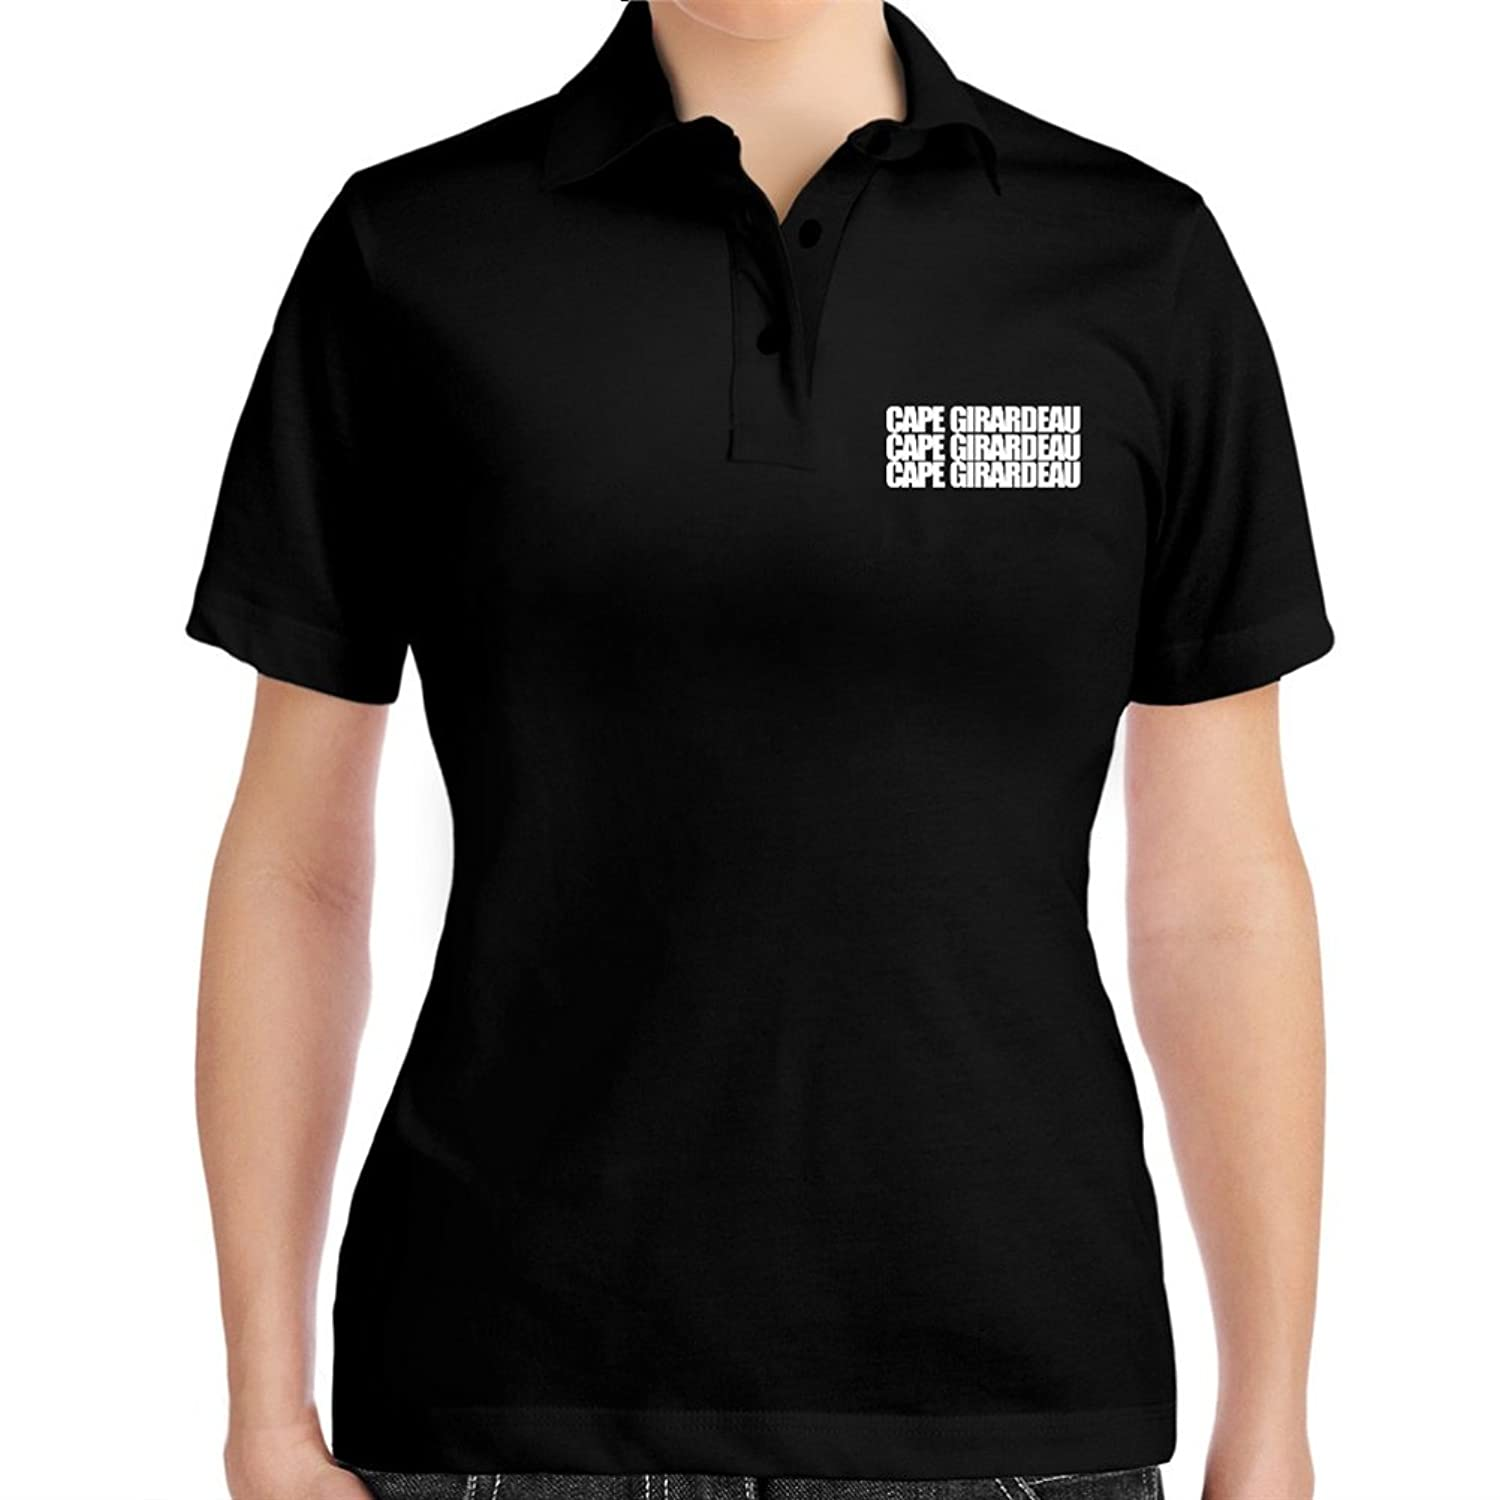 Cape Girardeau three words Women Polo Shirt